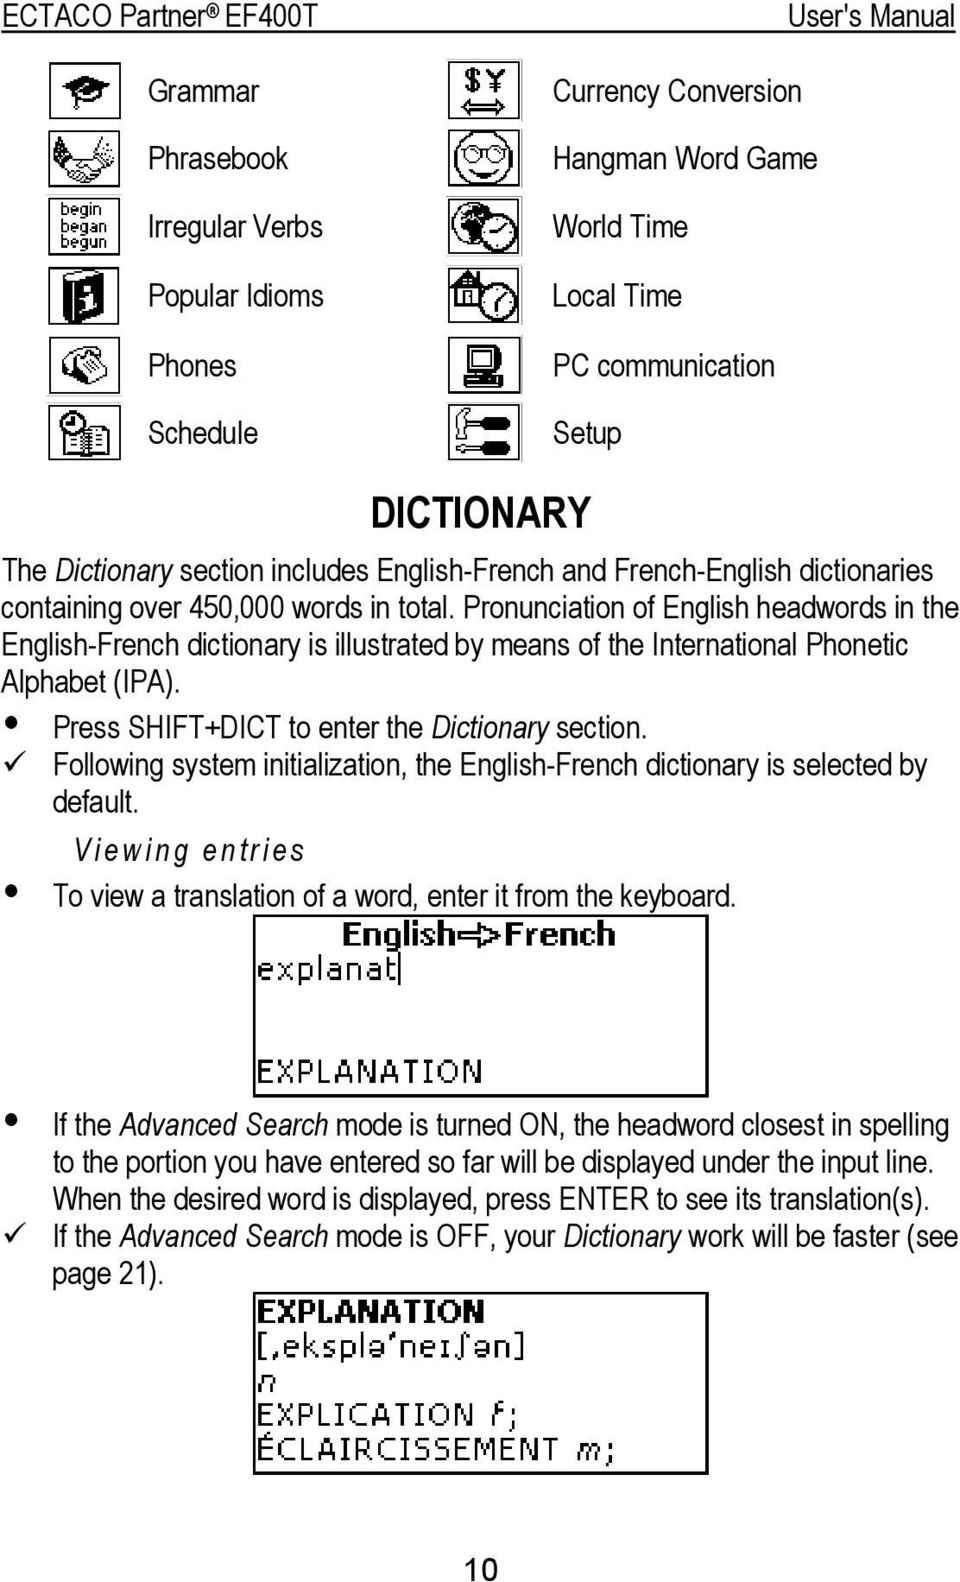 Pronunciation of English headwords in the English-French dictionary is illustrated by means of the International Phonetic Alphabet (IPA). Press SHIFT+DICT to enter the Dictionary section.